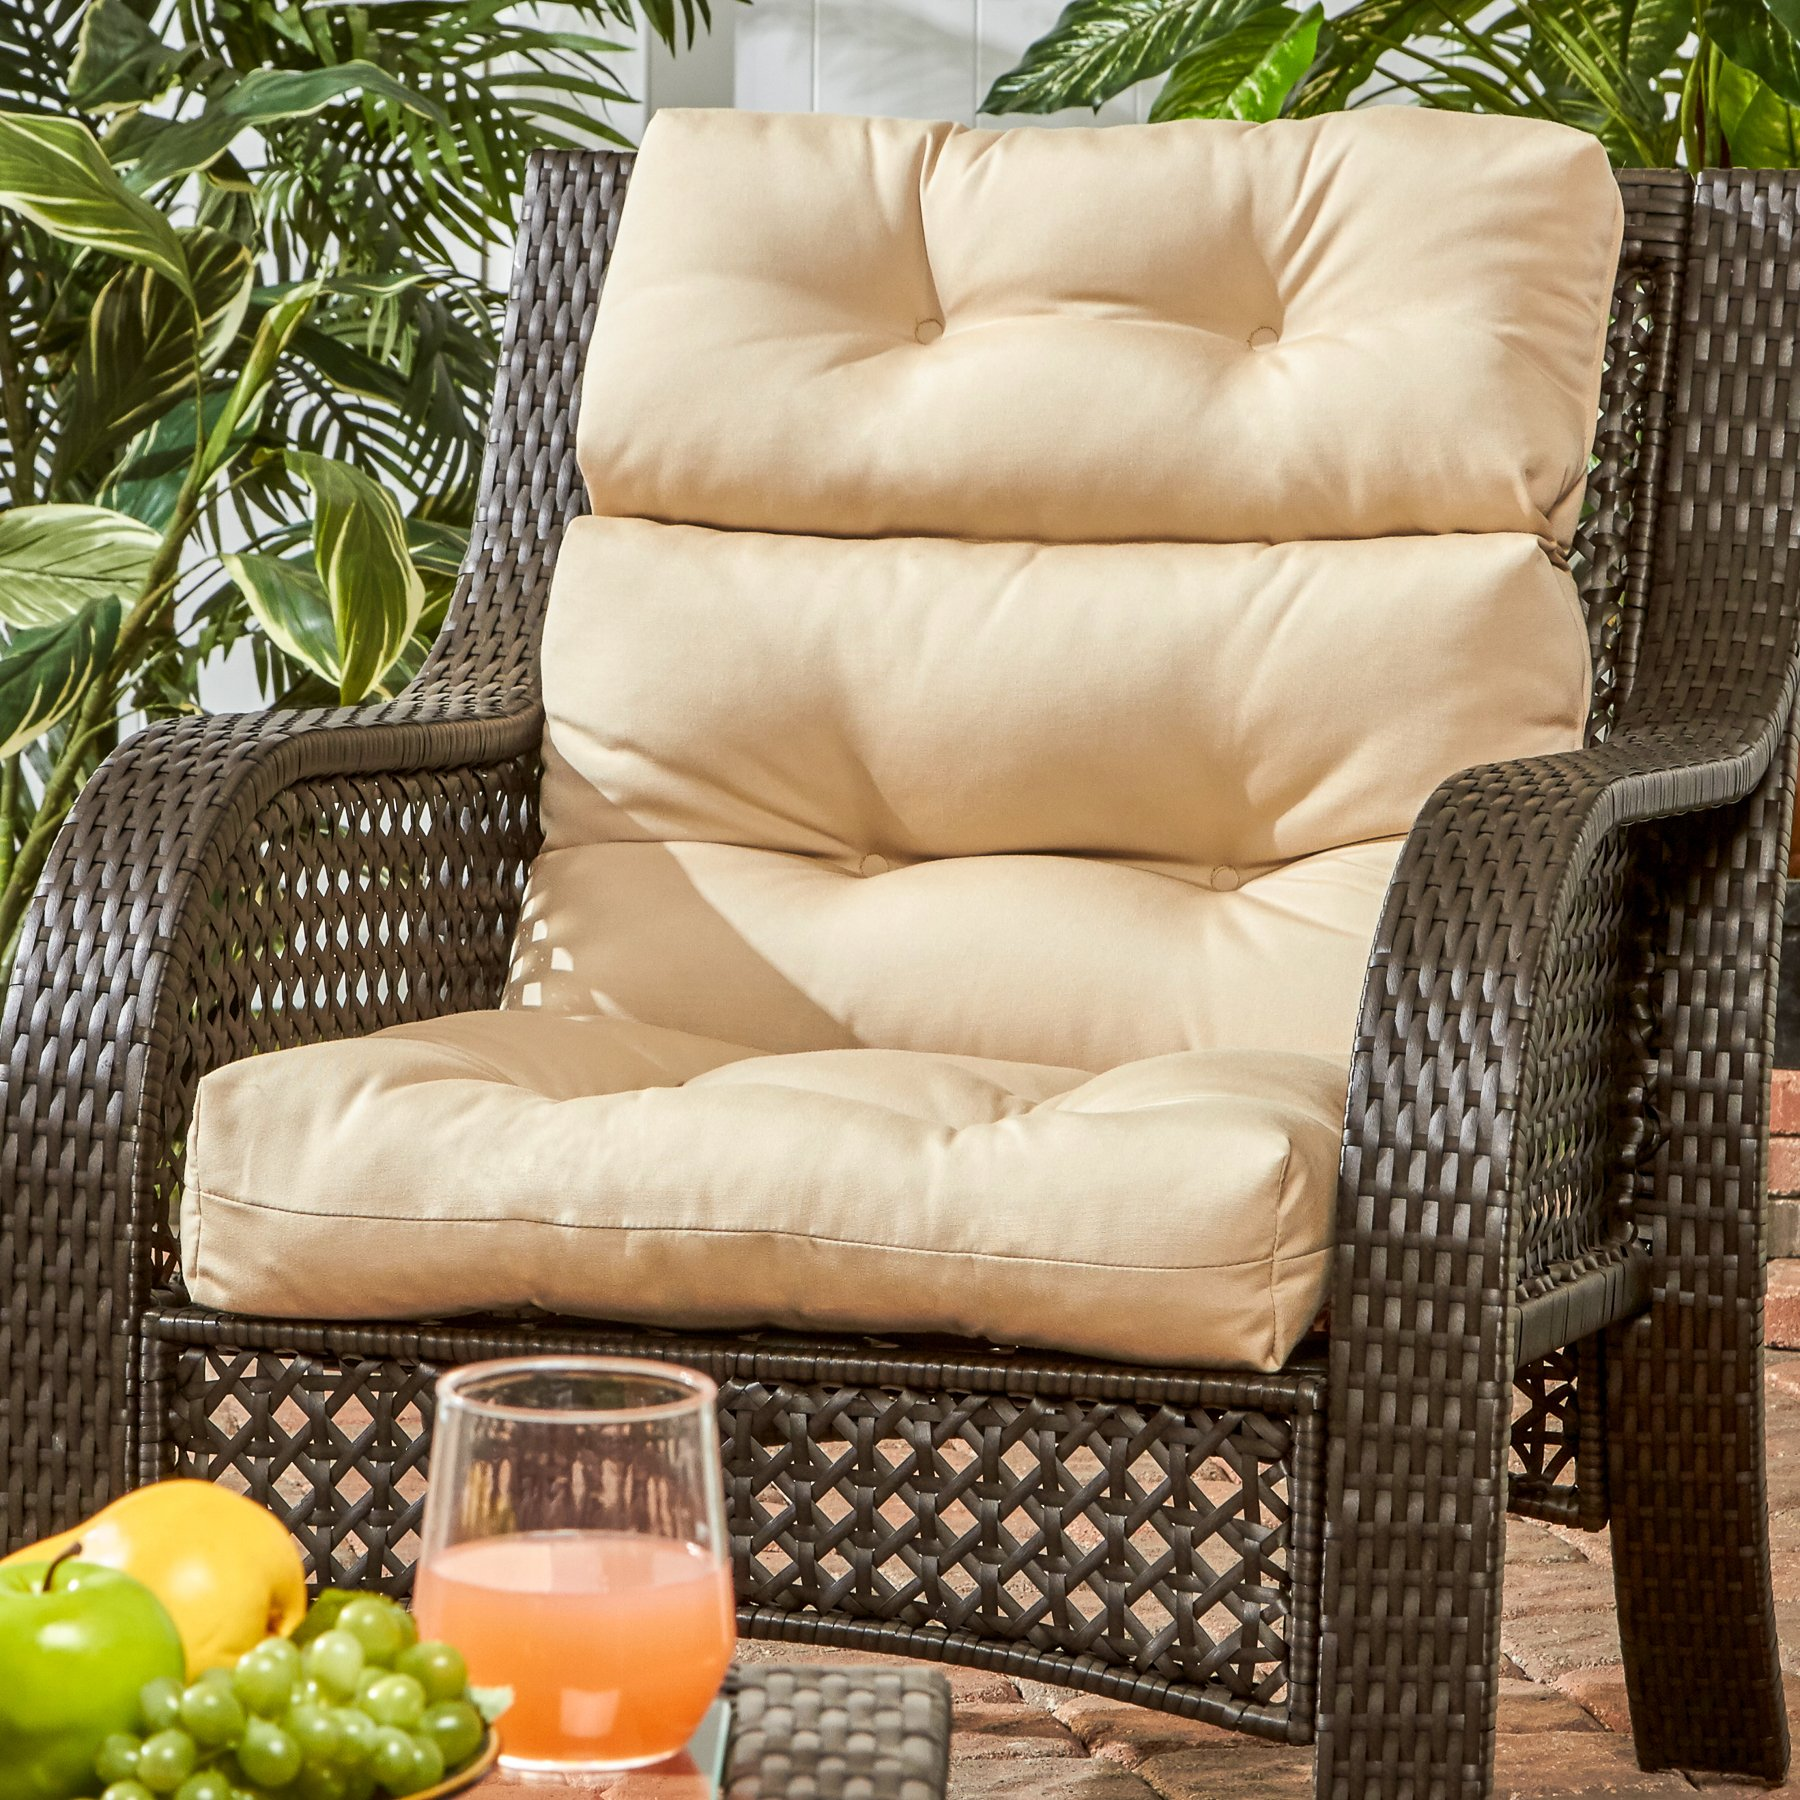 Greendale Home Fashions Outdoor High Back Chair Cushion, Stone by Greendale Home Fashions (Image #2)